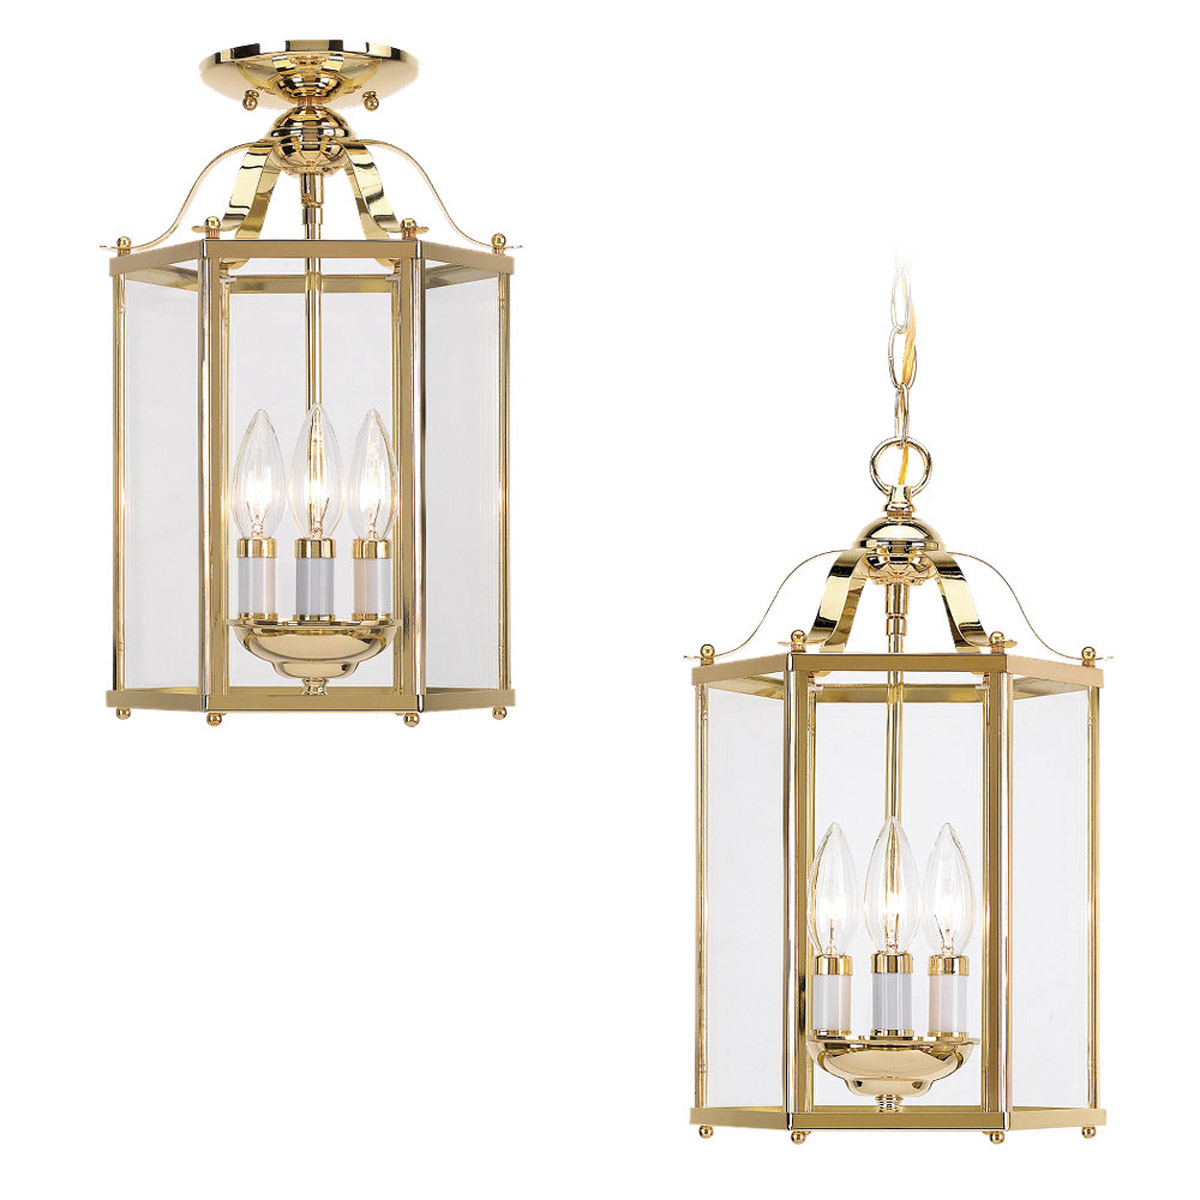 Sea Gull Lighting Bretton 3 Light Pendant Convertible in Polished Brass 5231-02